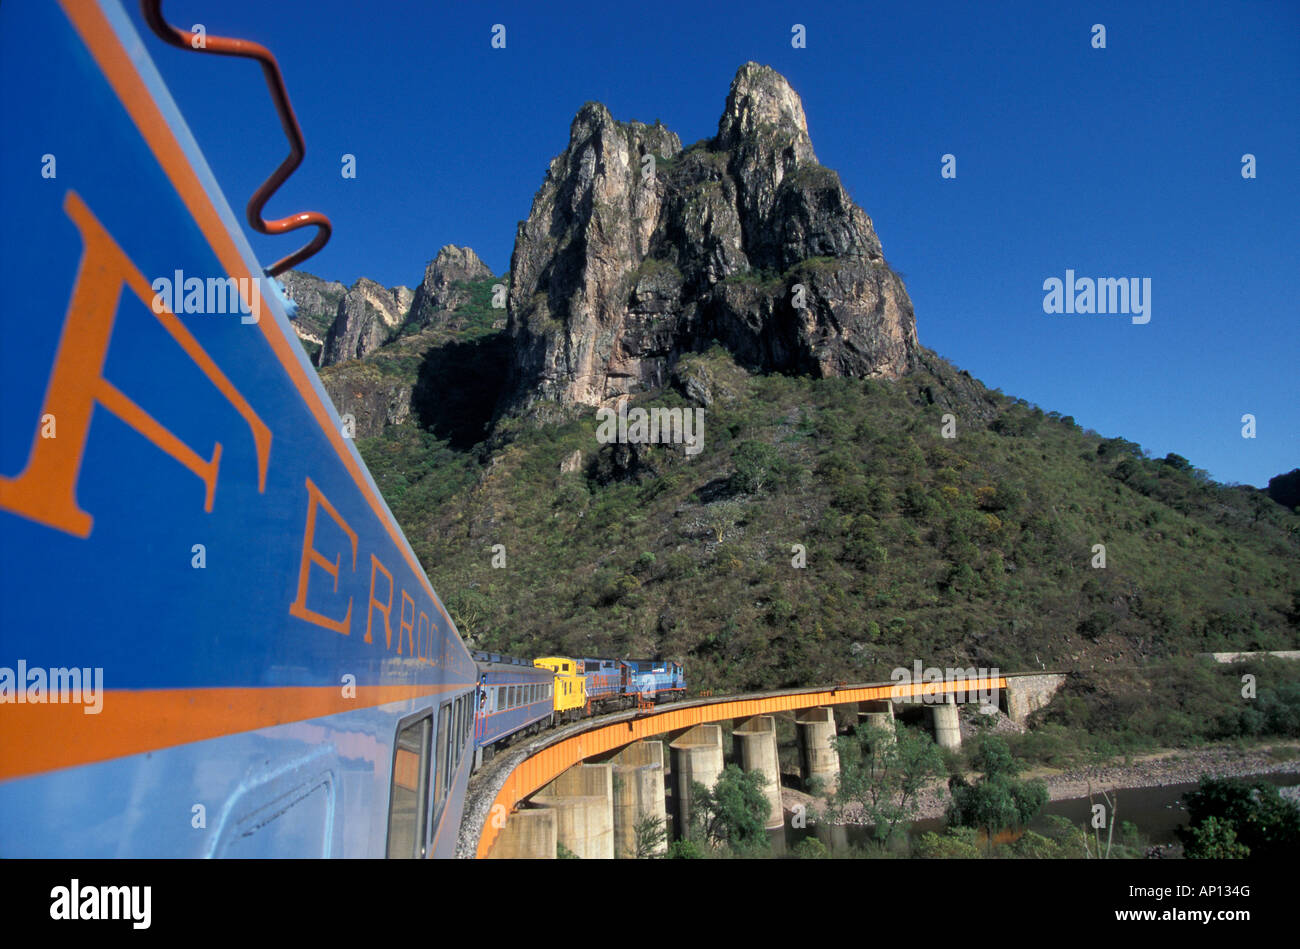 Train Line El Pacifico from Chihuahua to Los Mochis, Mexiko - Stock Image